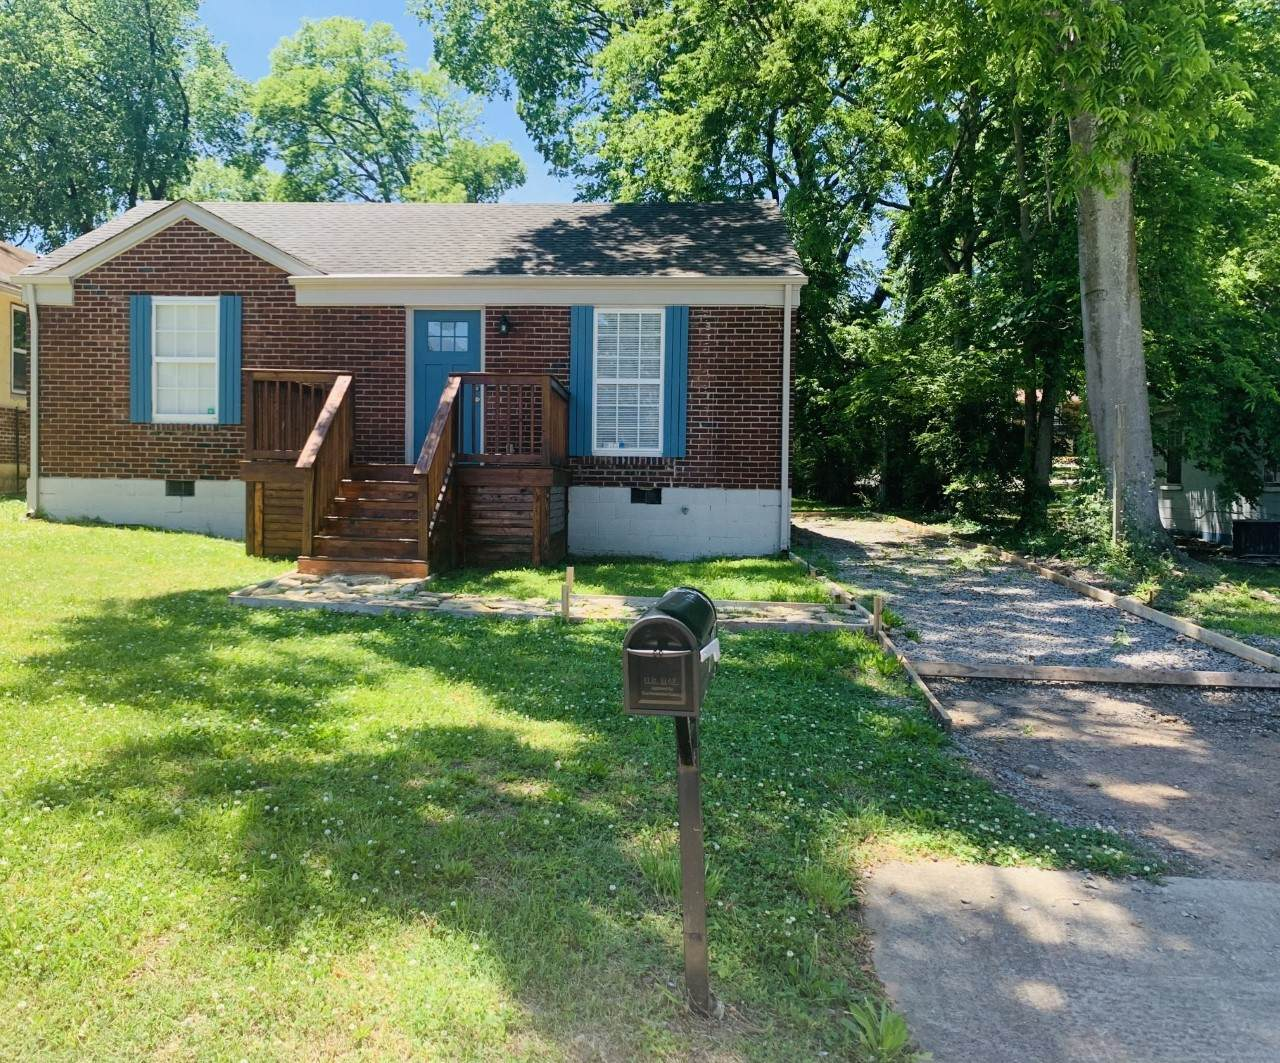 923 30th Ave - Photo 1